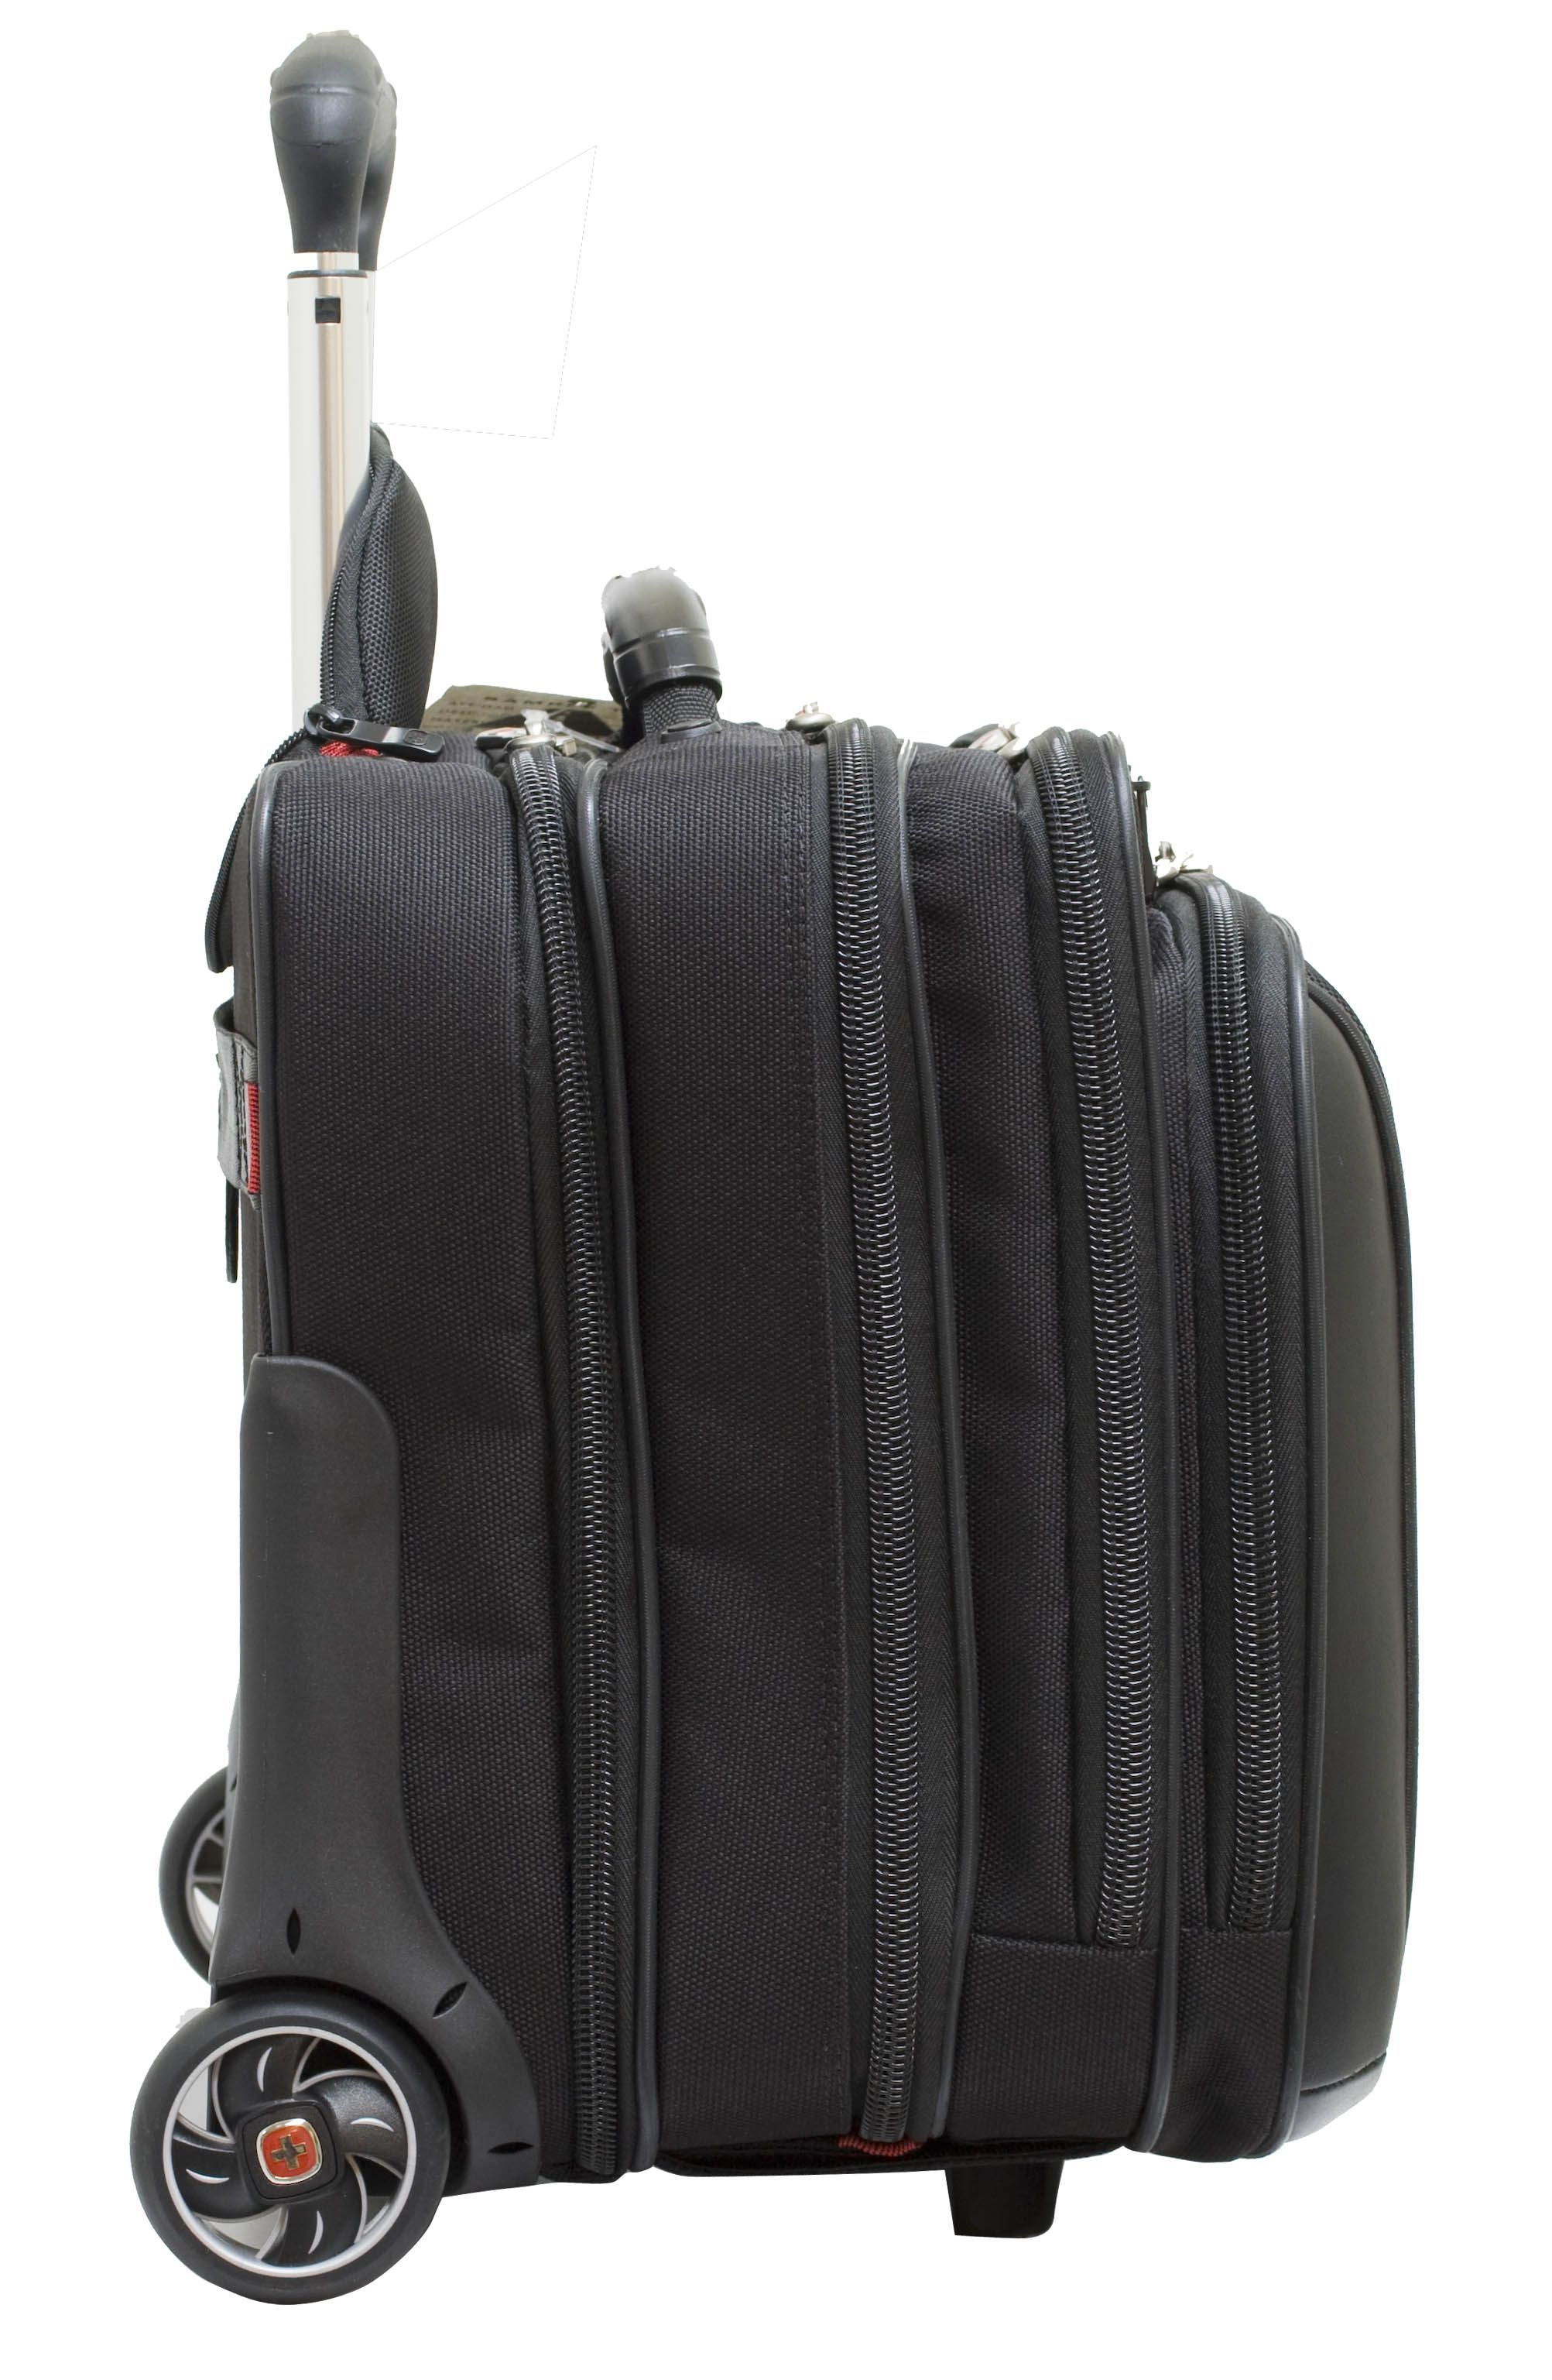 Swiss Gear Backpack With Wheels - Crazy Backpacks | F I R A M ...